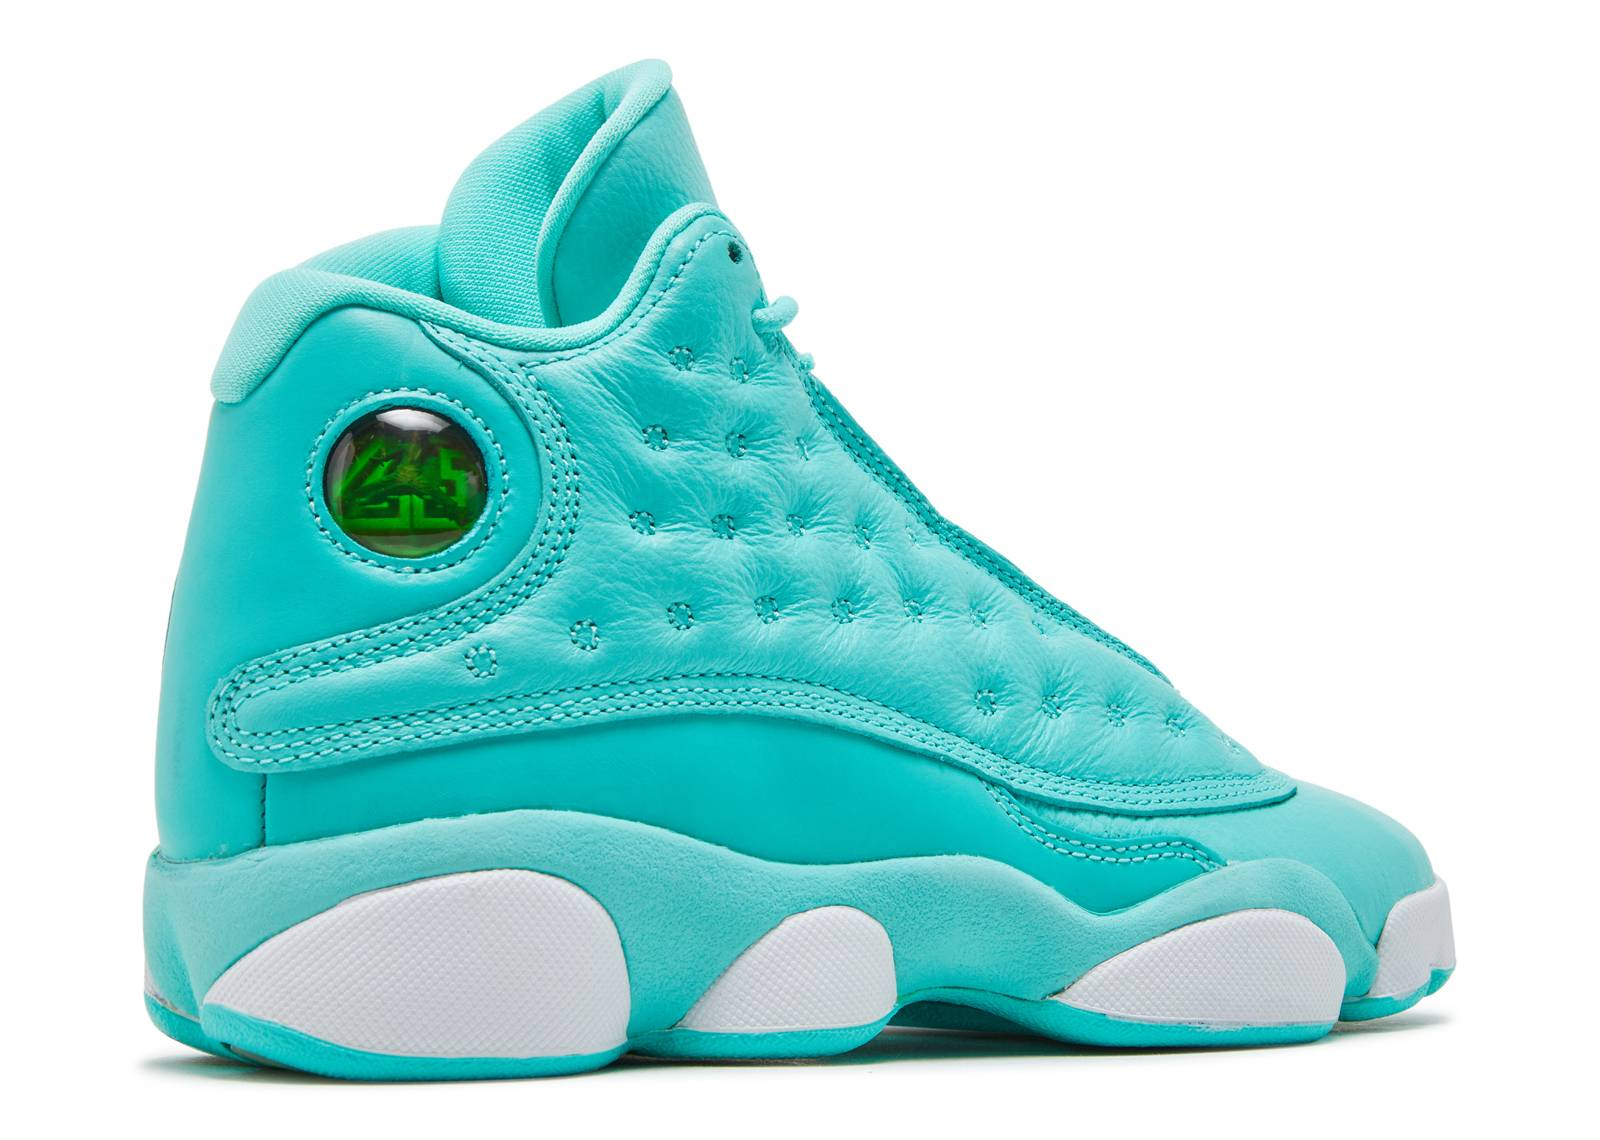 jordan singles The air jordan 13 chinese singles day is introduced and suggested to debut on november 11th stay tuned to kicksonfire for more info jordan grand prix was an irish formula one constructor that competed from 1991 to 2005.